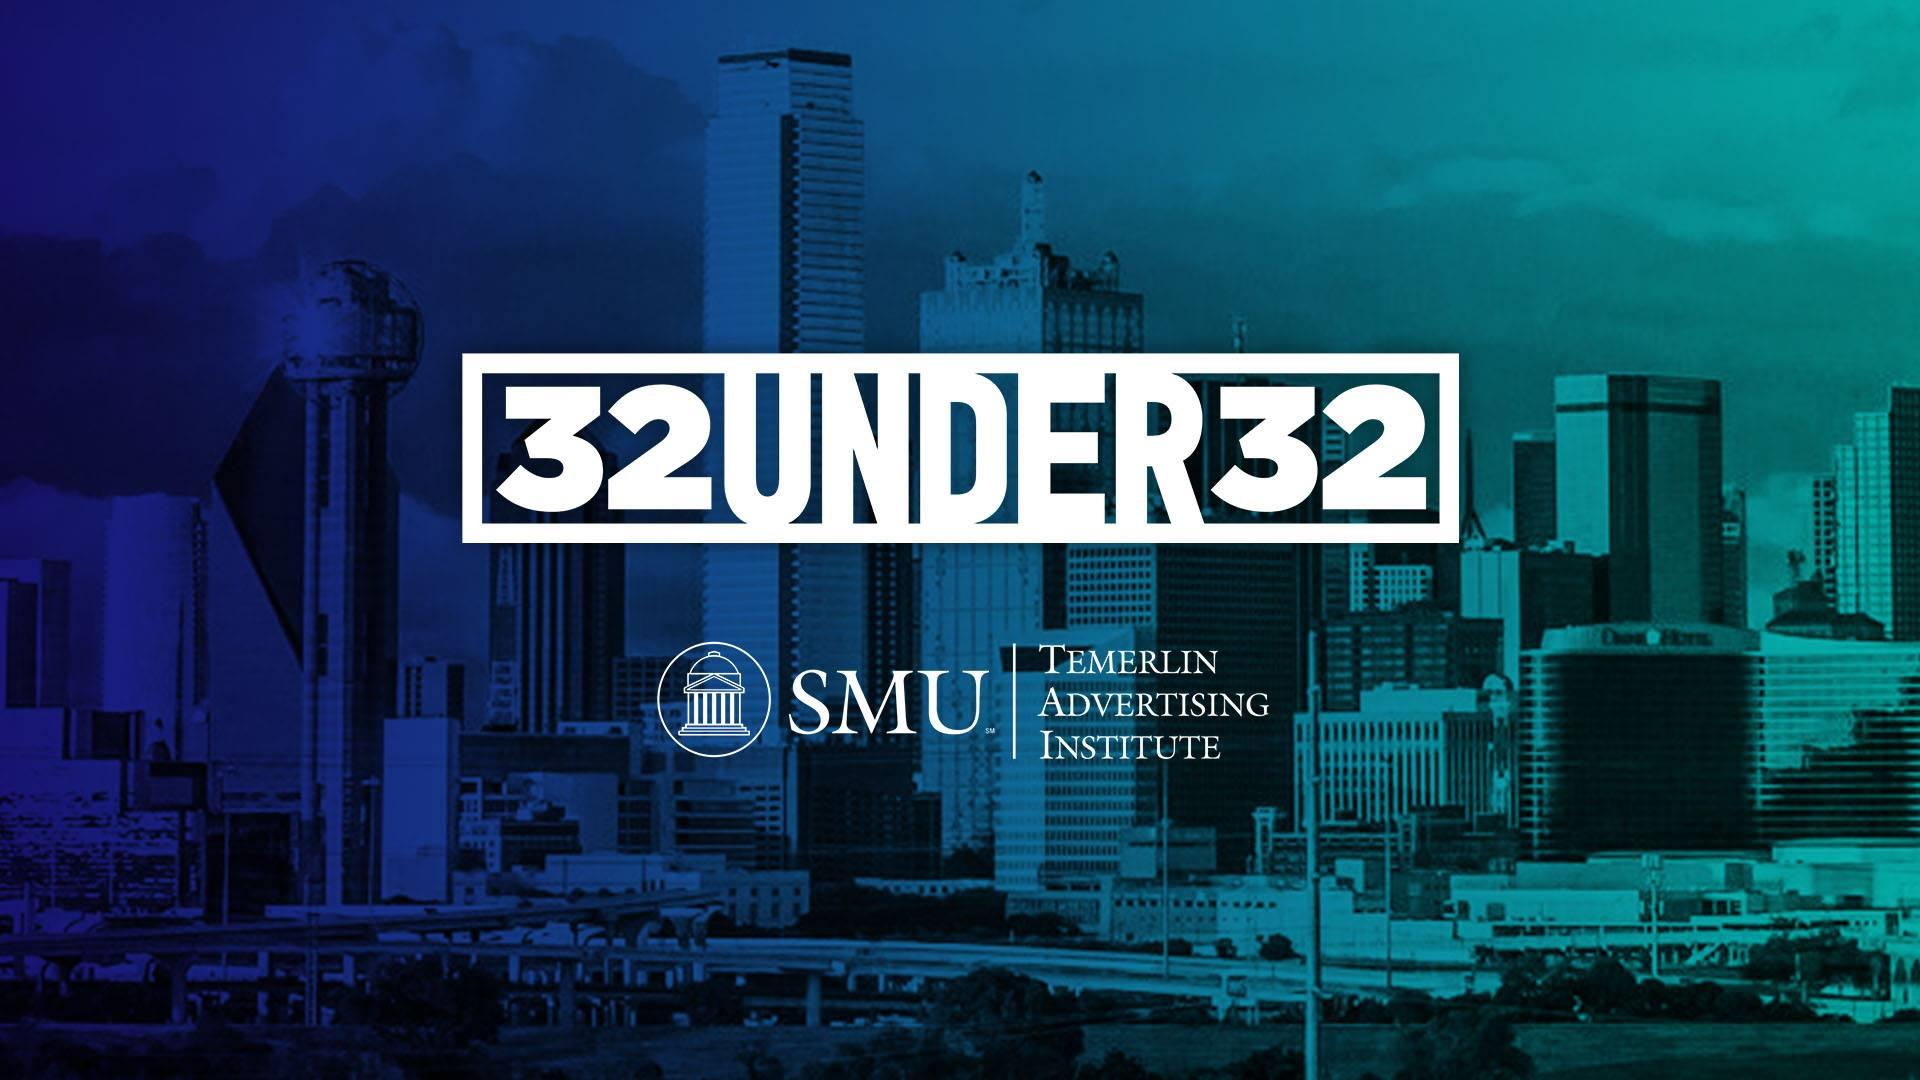 """Groupers win """"32 Under 32"""" awards"""